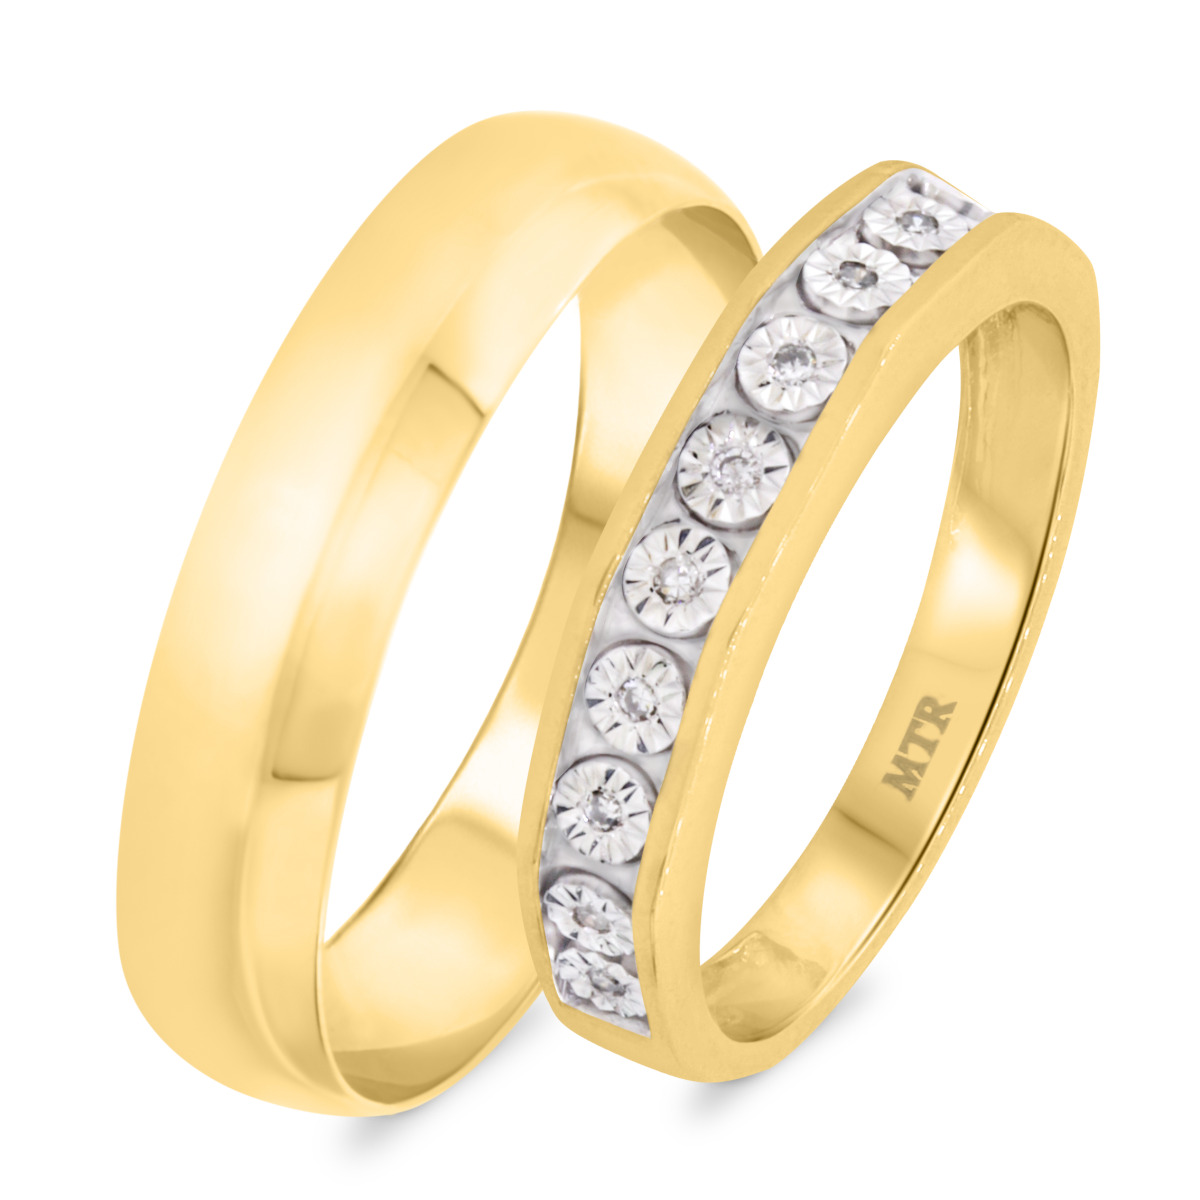 1/20 Carat T.W. Diamond Matching Wedding Band Set 10K Yellow Gold